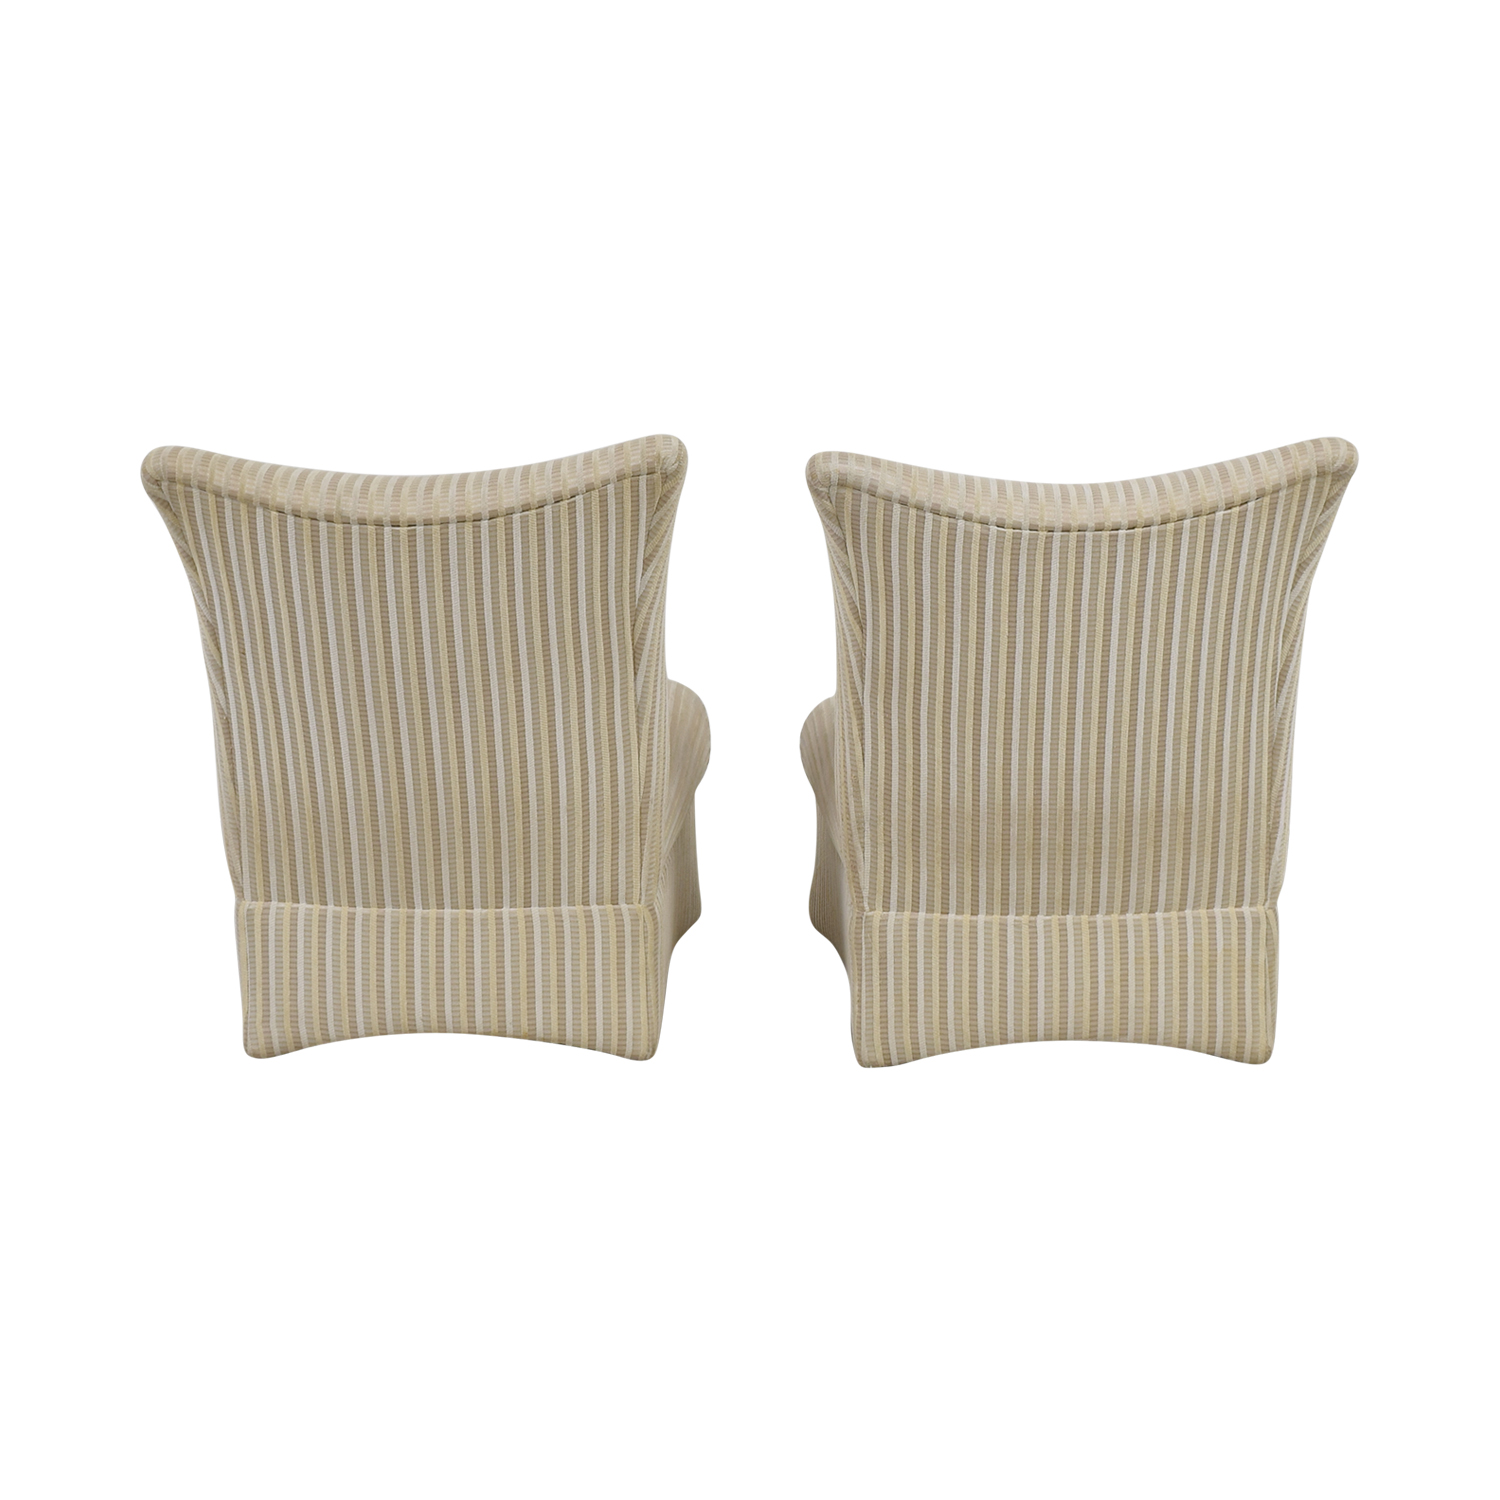 Ethan Allen Ethan Allen Striped Accent Chairs nyc